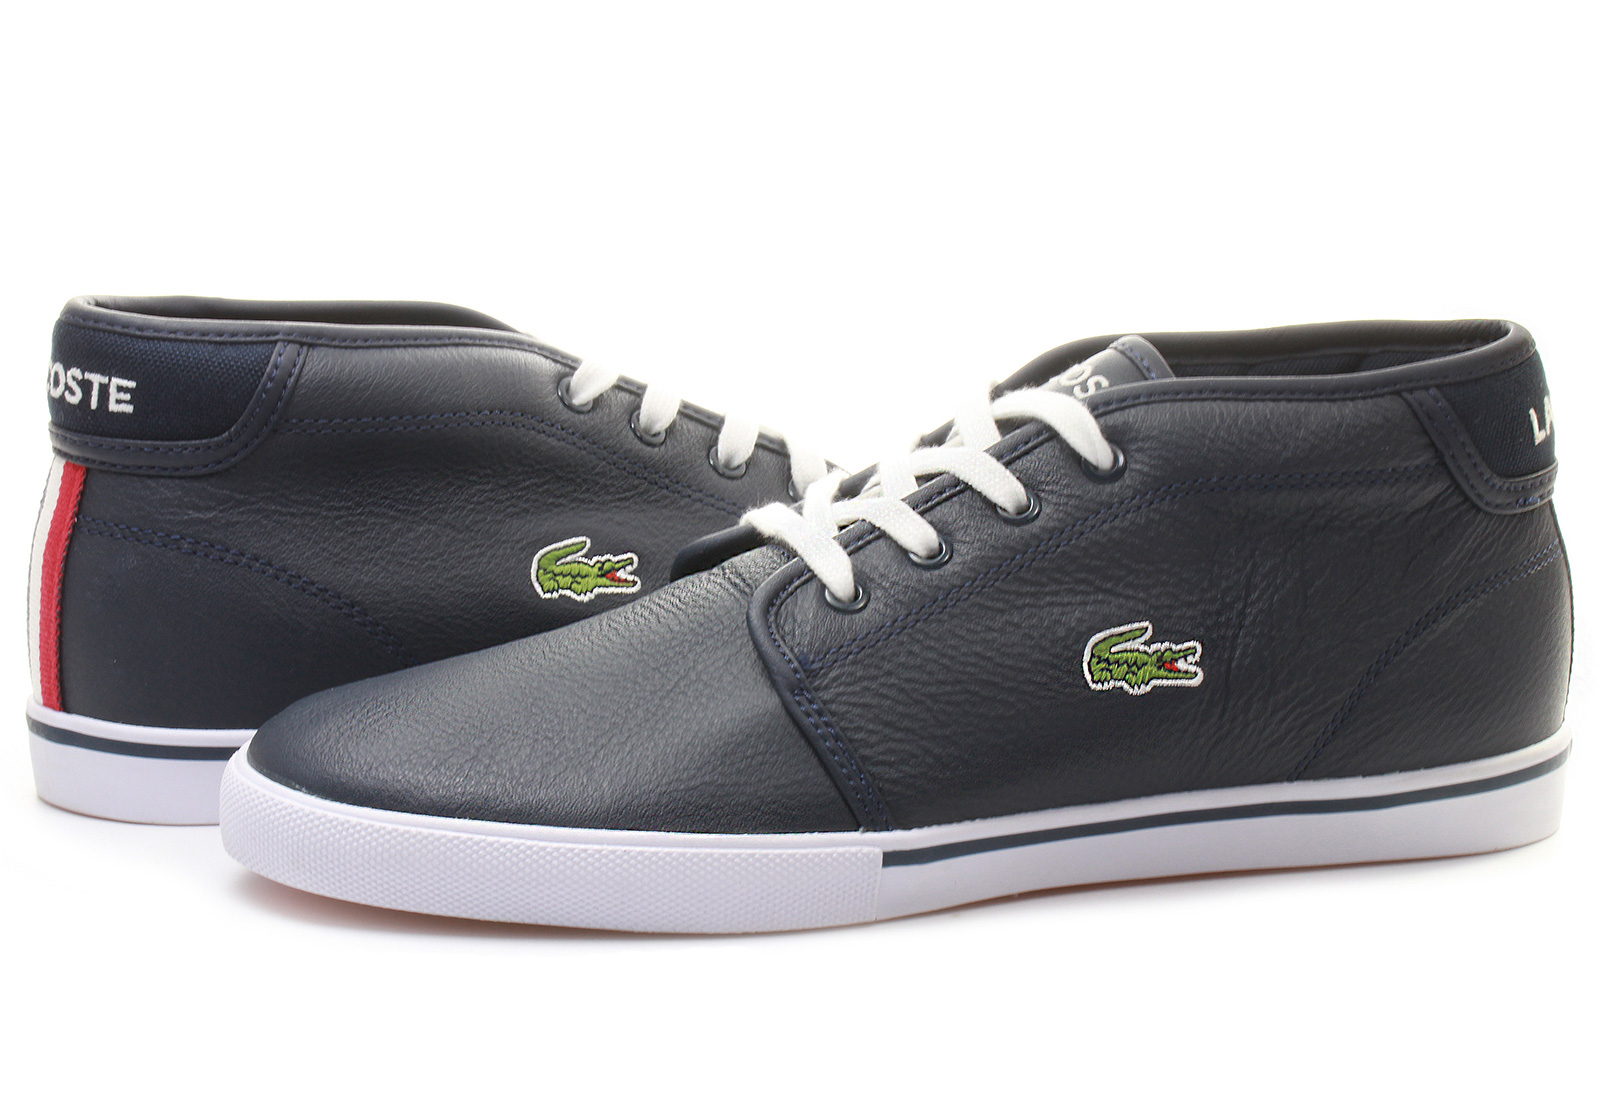 lacoste shoes ampthill 141spm1004 db4 online shop for sneakers shoes and boots. Black Bedroom Furniture Sets. Home Design Ideas